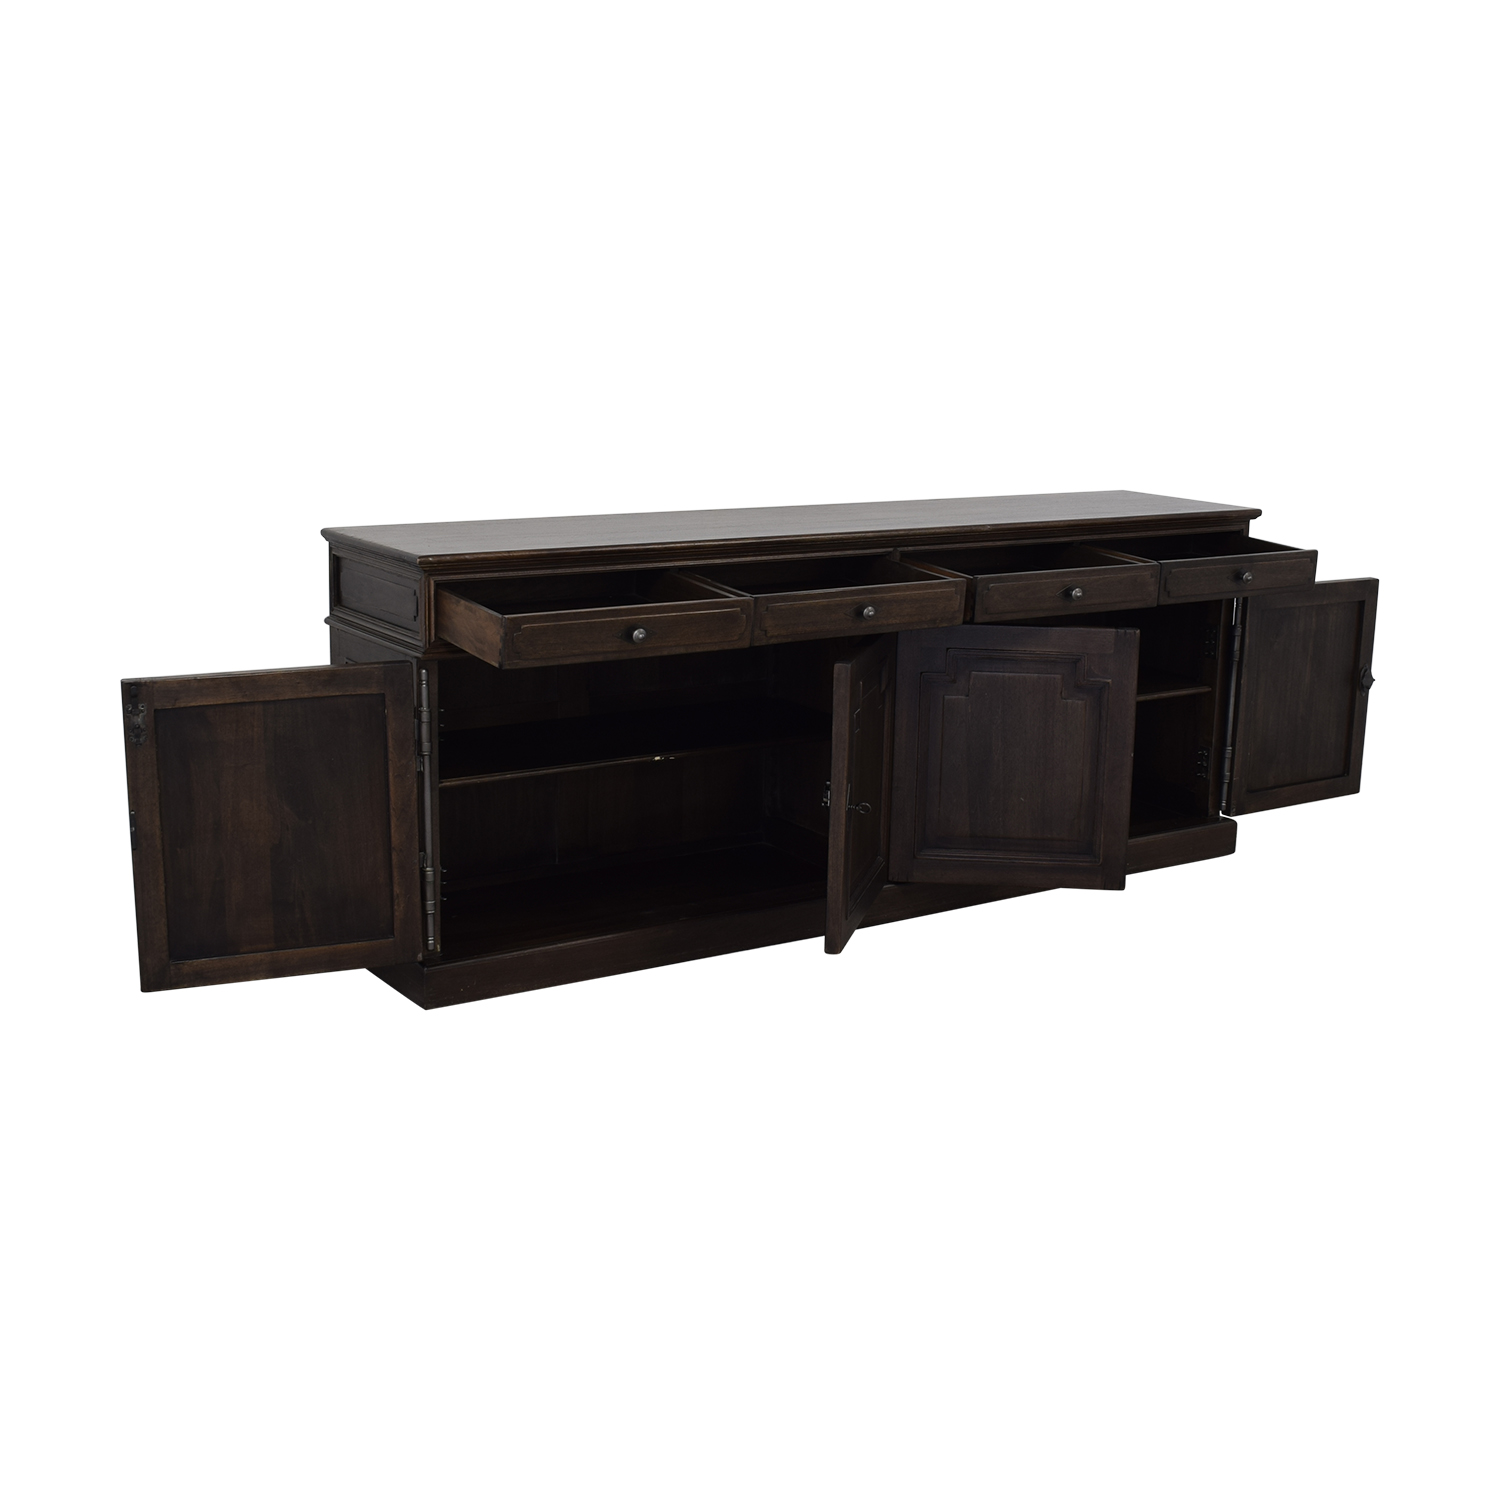 Restoration Hardware Restoration Hardware Montpellier Sideboard With Drawers discount